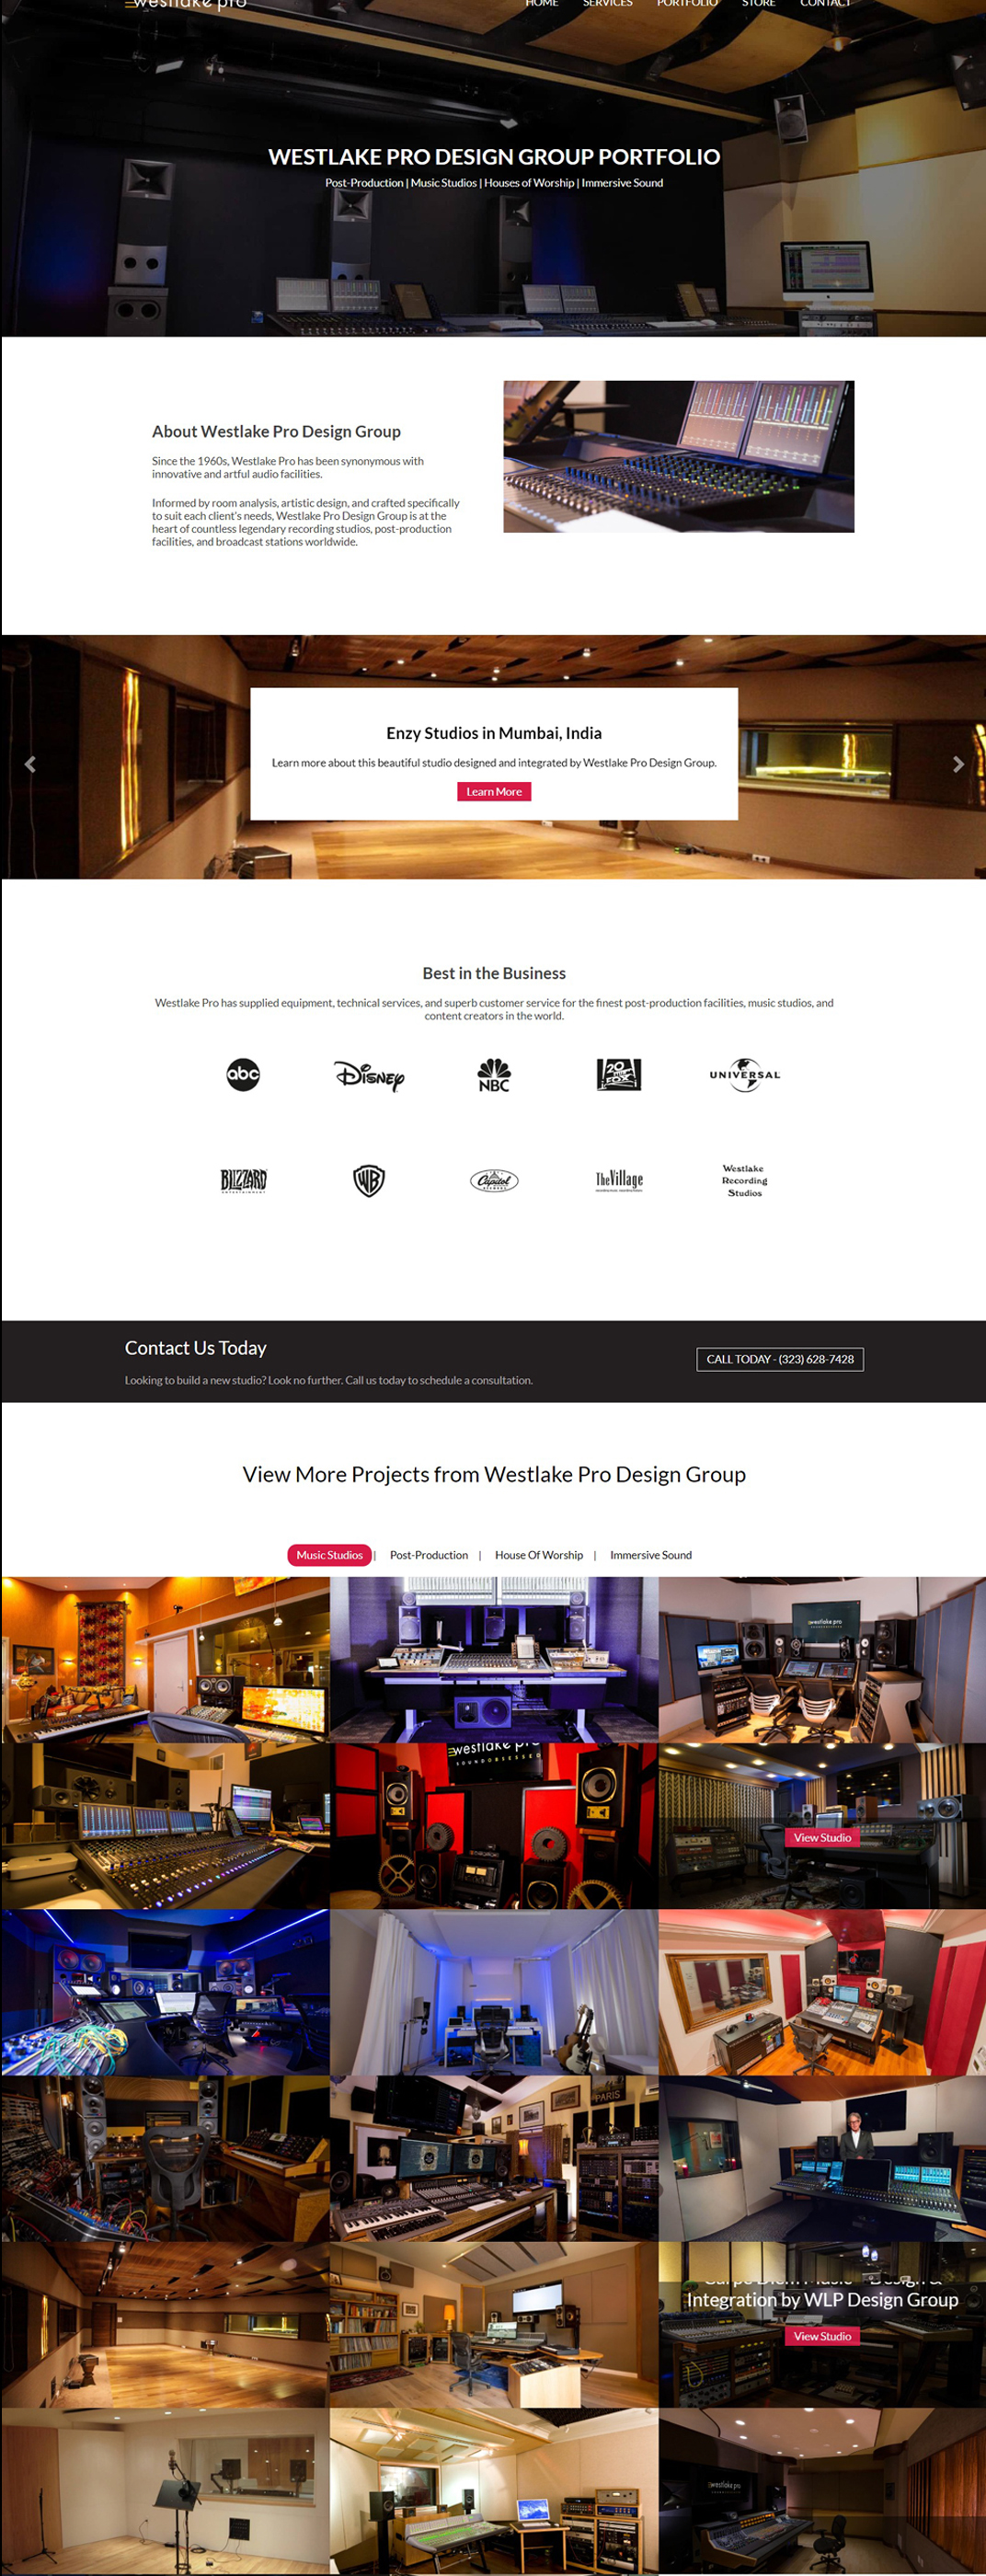 Westlake Pro Design Group